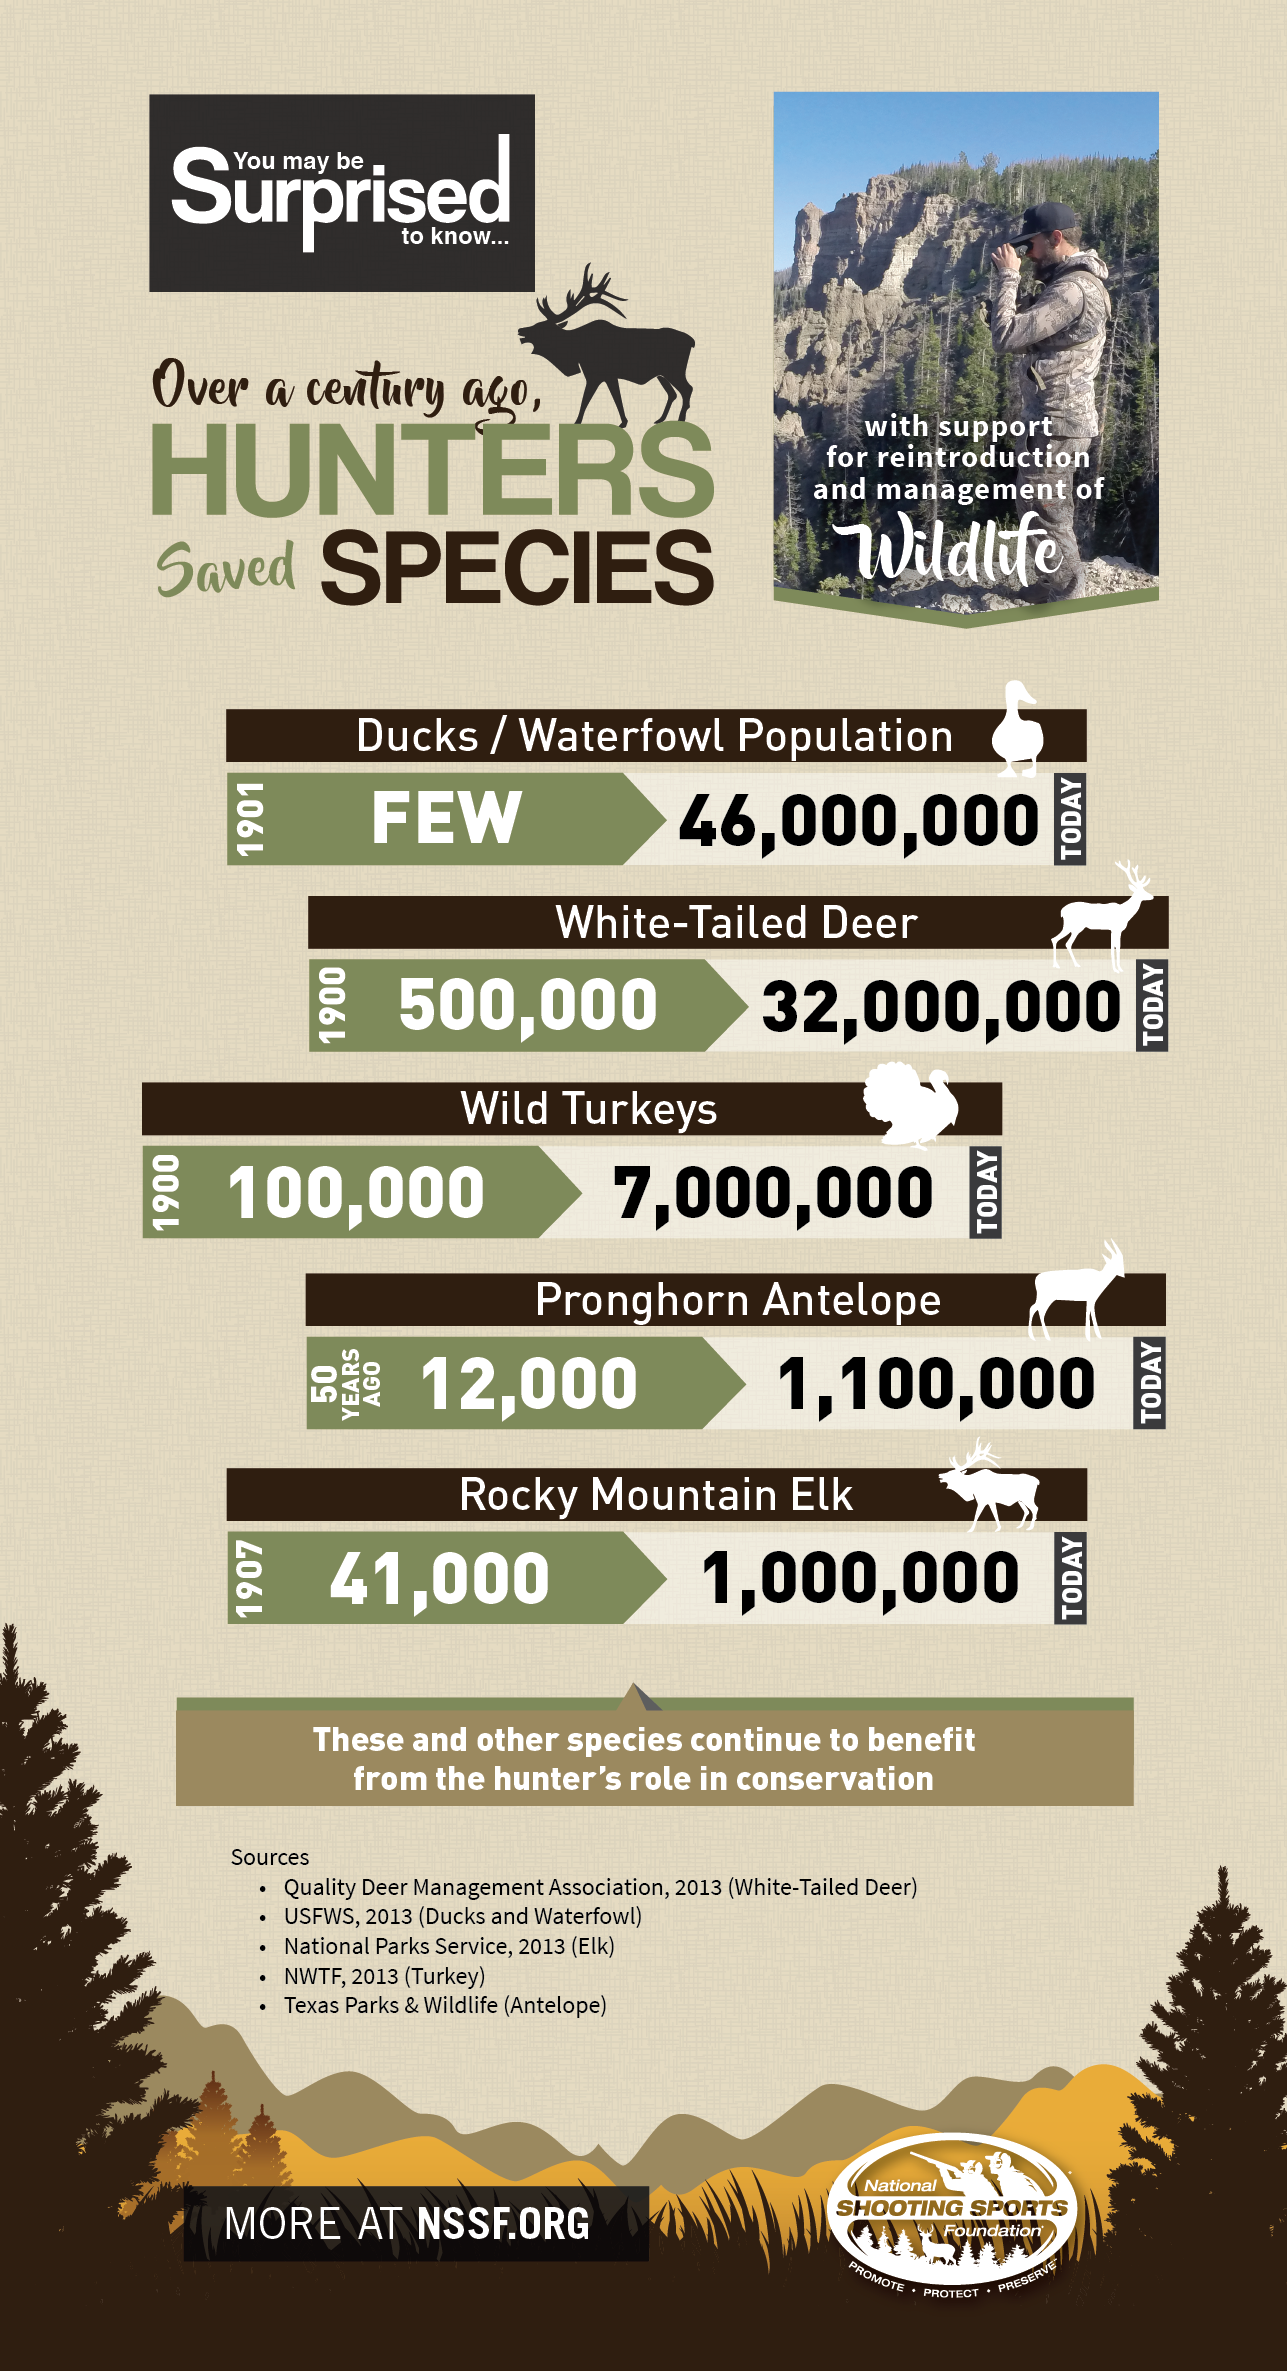 YMBS_HuntersSaveSpecies_Infographic.png